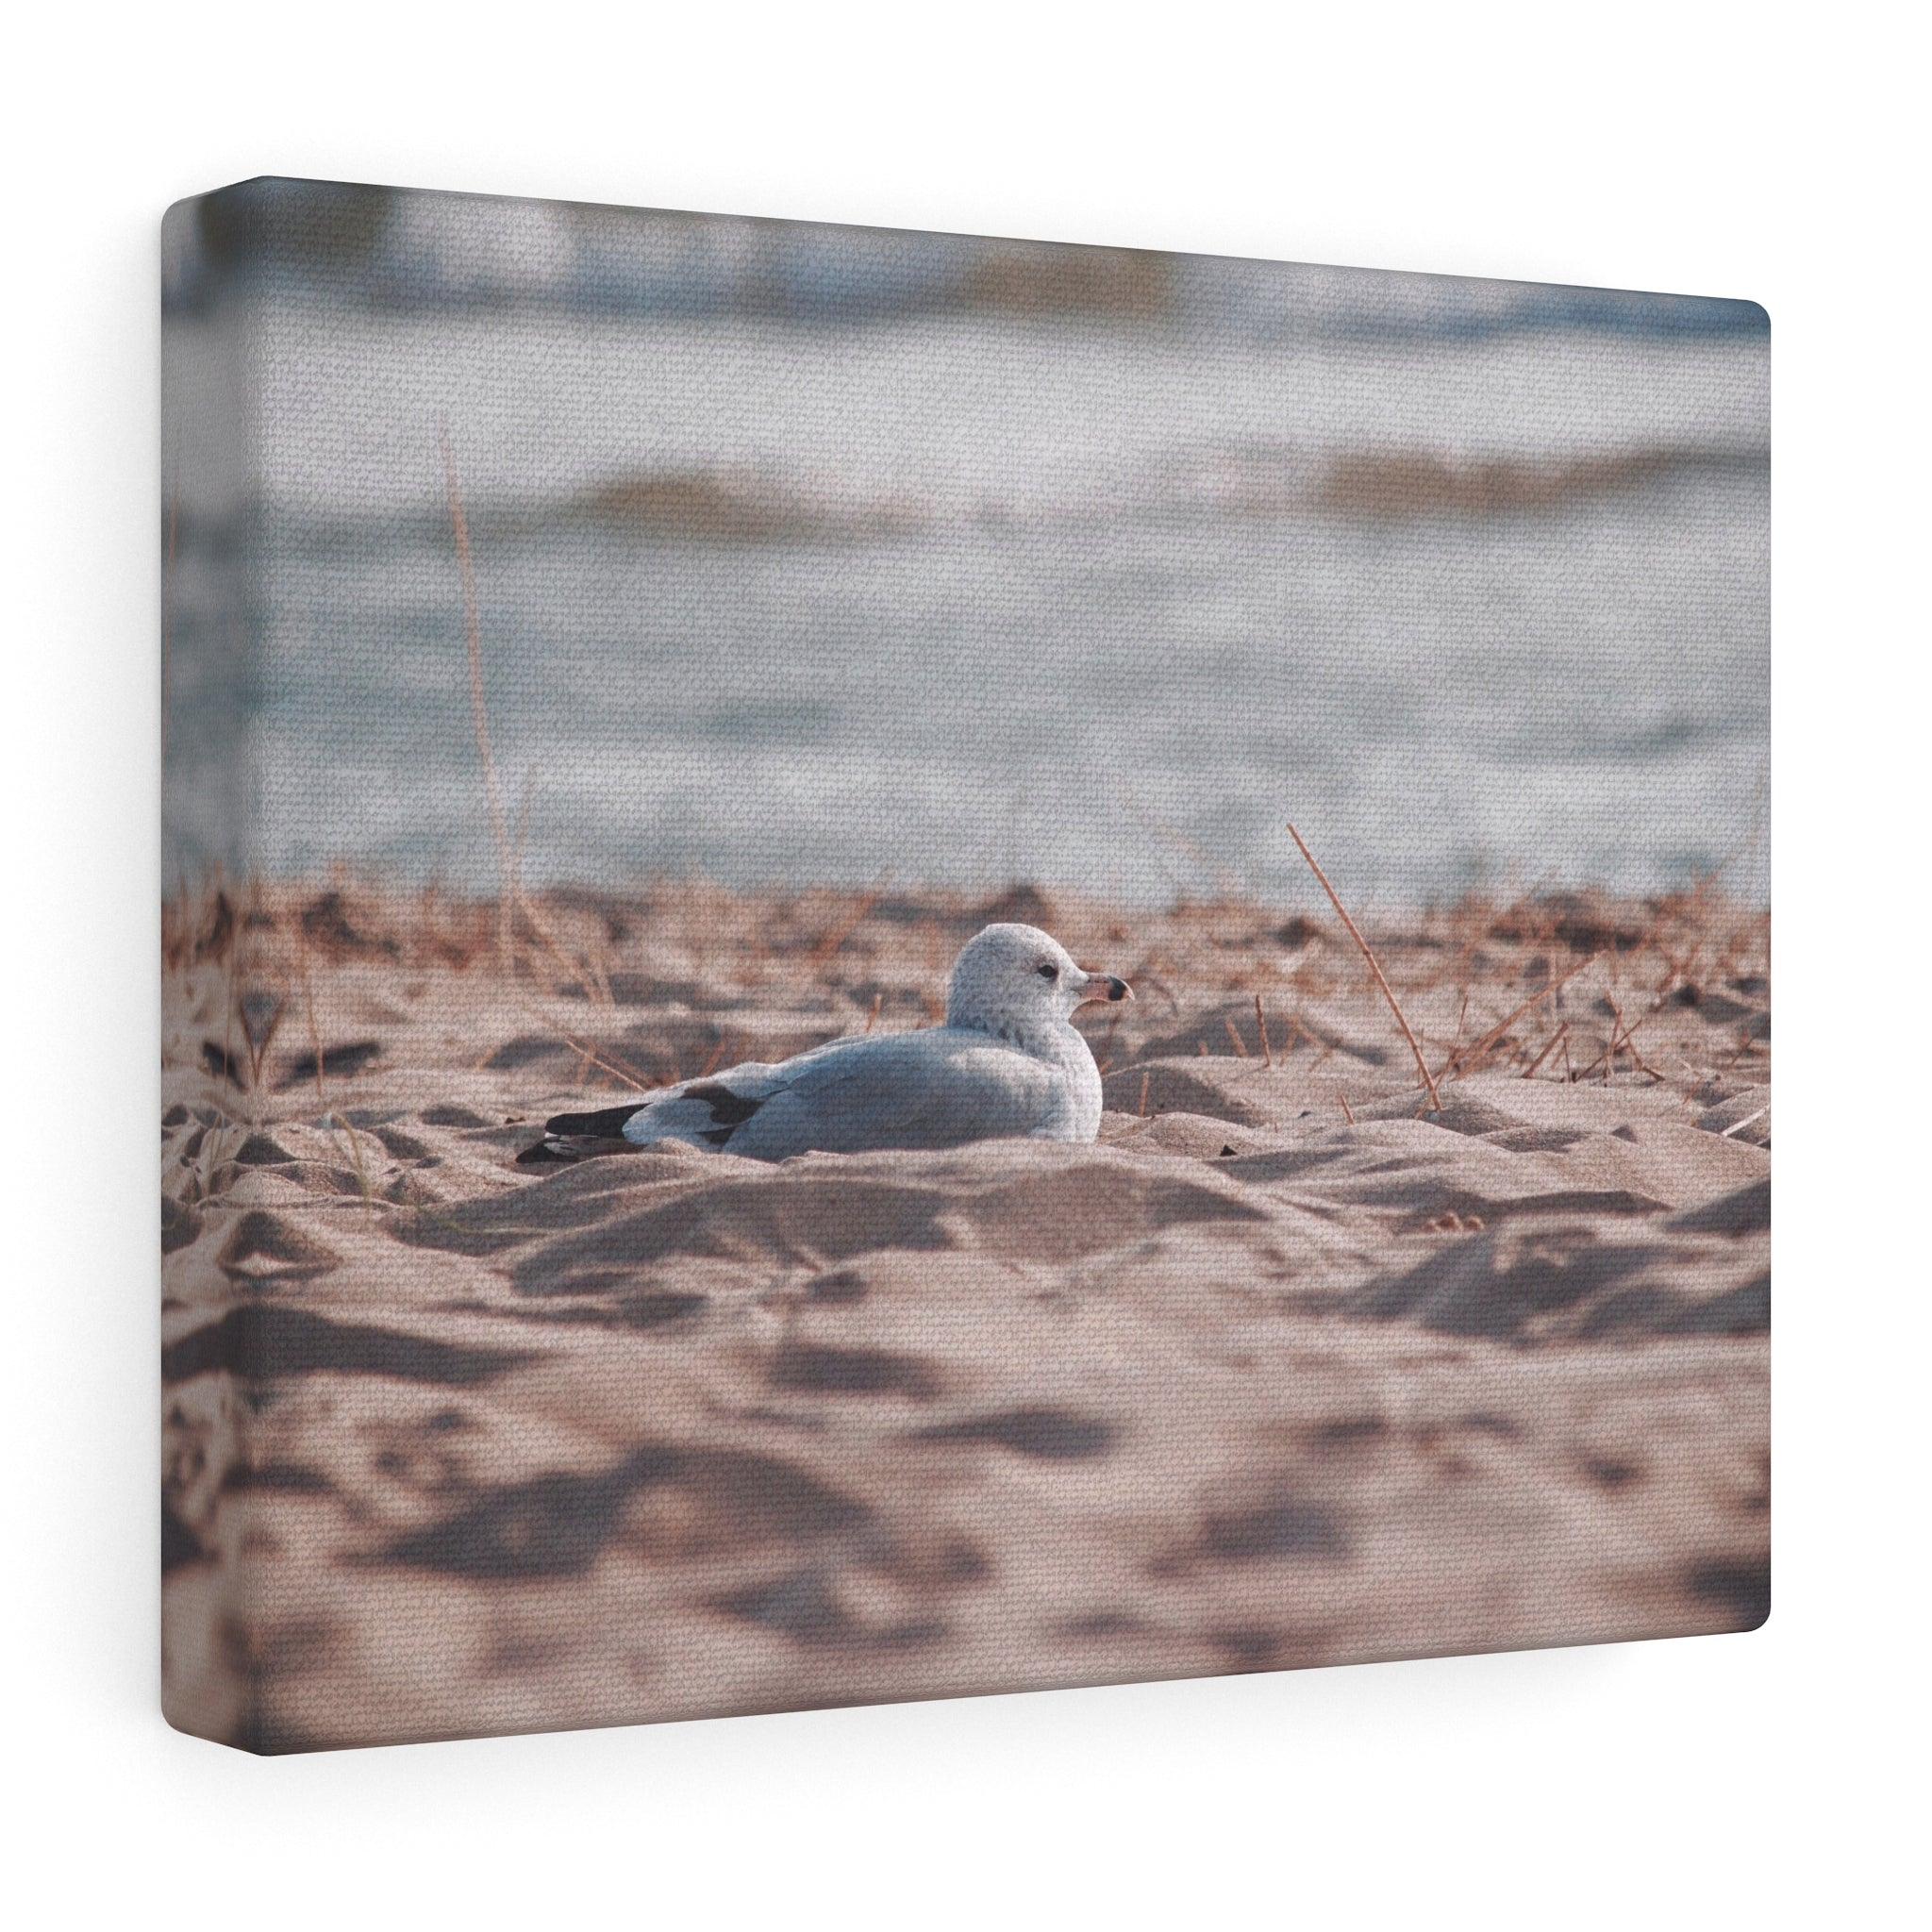 Seagull in Solitude Canvas Gallery Wrap